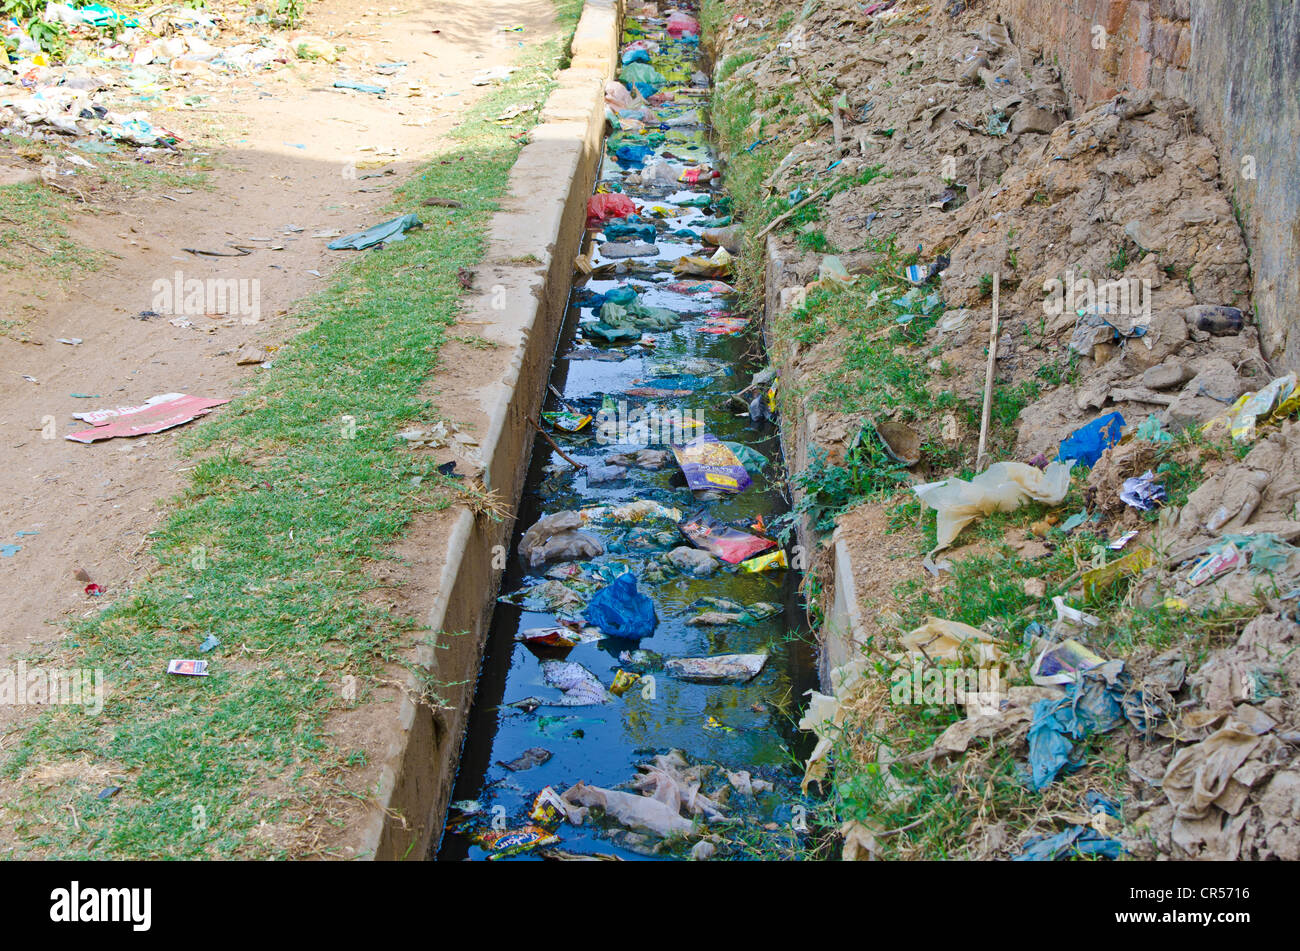 Sewage Water Polluted By Plastic Bags Stock Photo